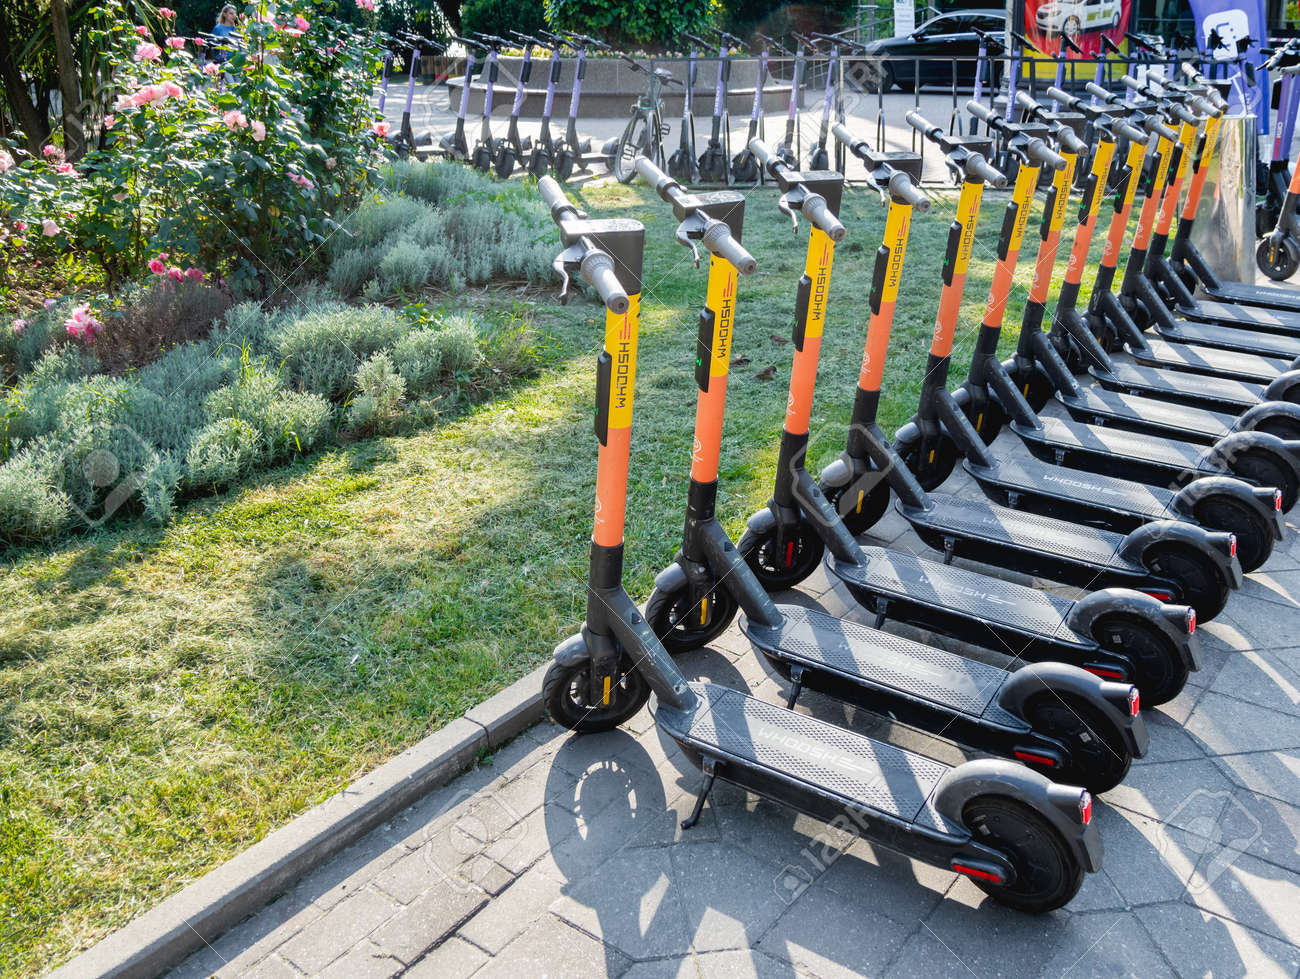 SOCHI, RUSSIA - May 27, 2021. Kick scooters for rent in urban park. Eco-friendly and comfortable urban transport for tourists and locals. - 172810786